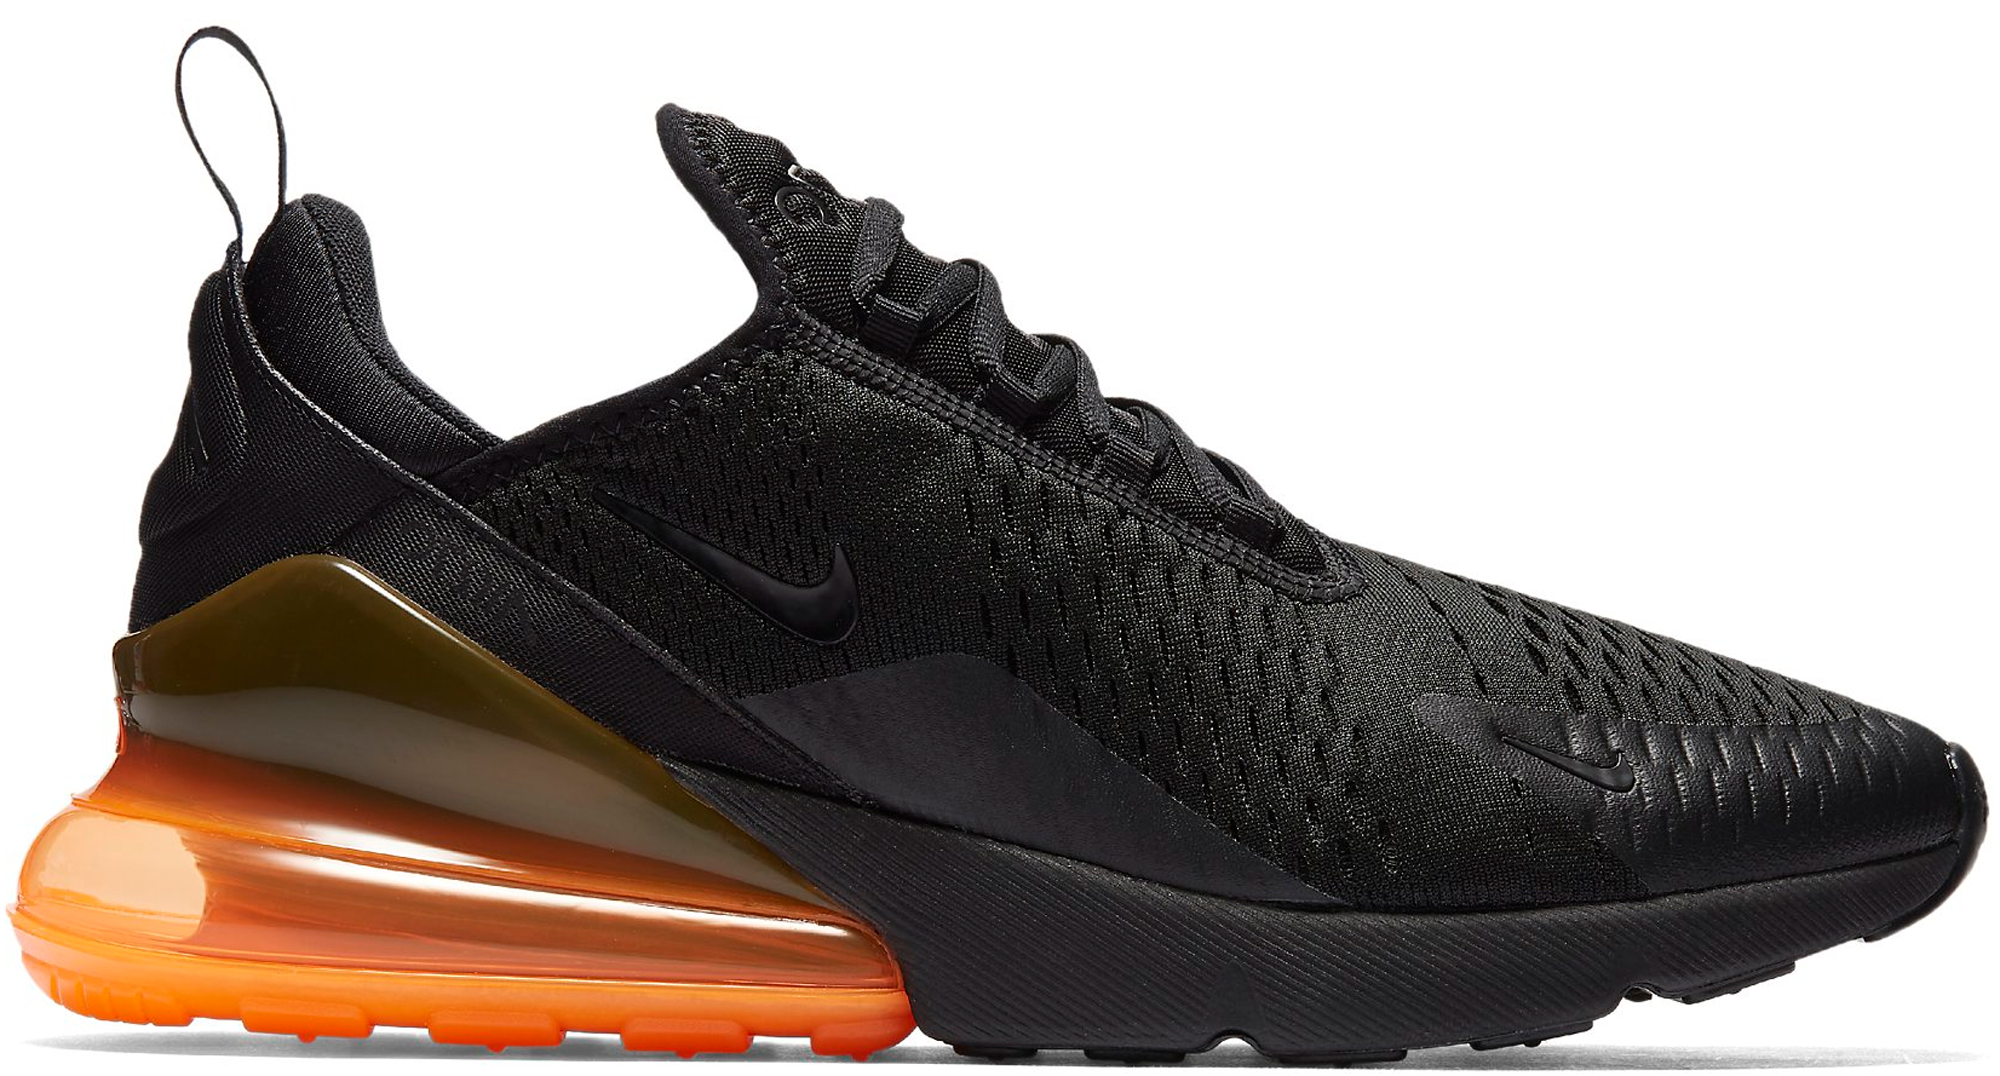 Air Max 270 Black Total Orange